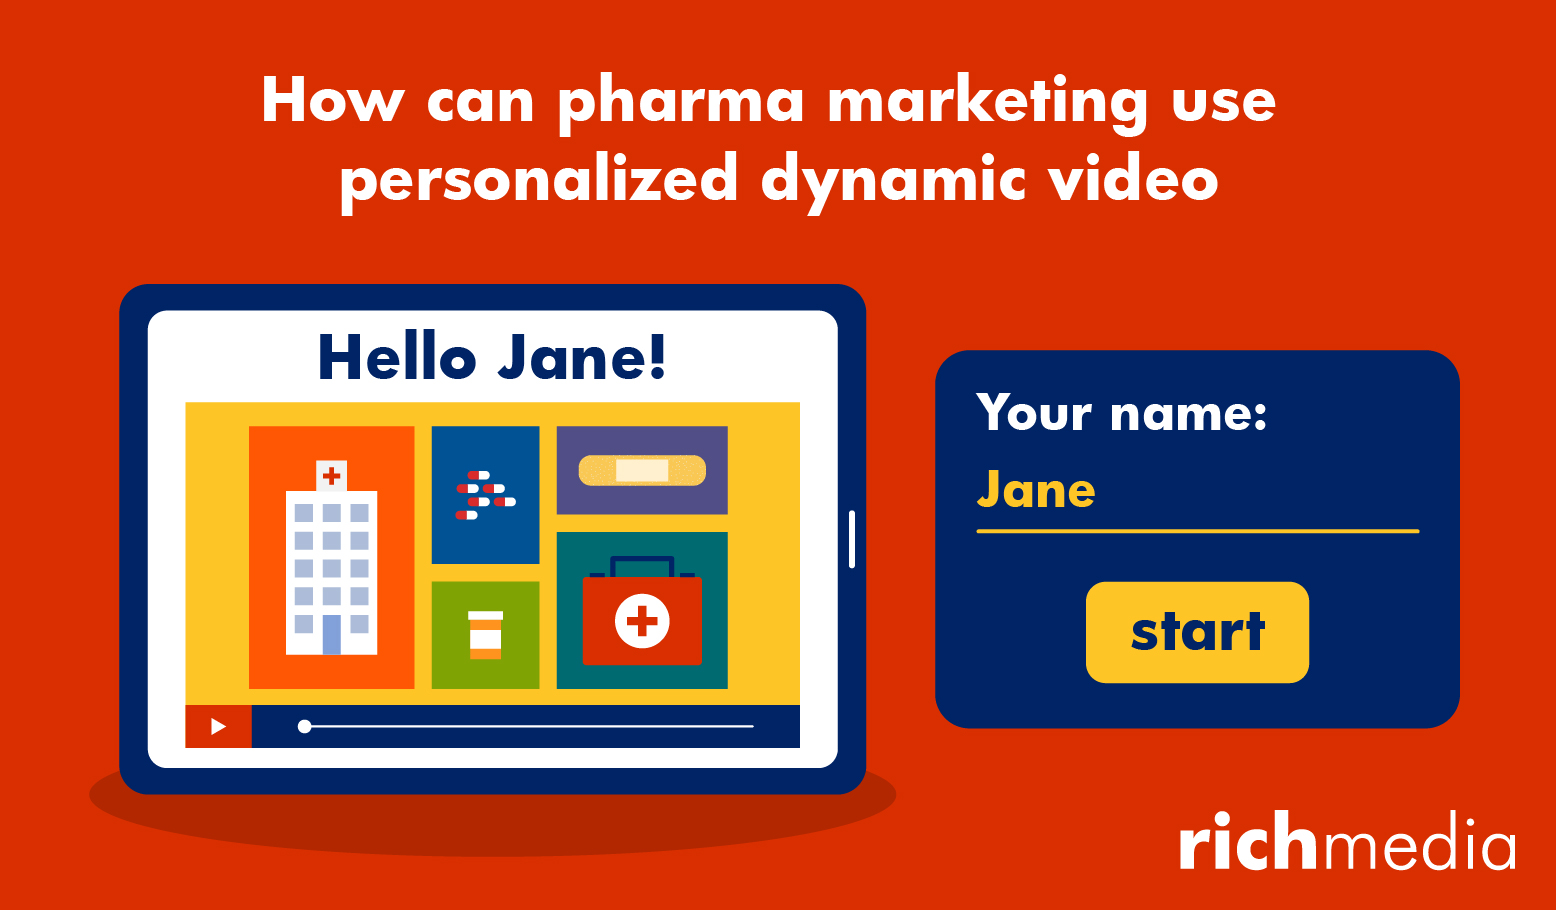 How Can Pharma Marketing Use Personalized Dynamic Video?